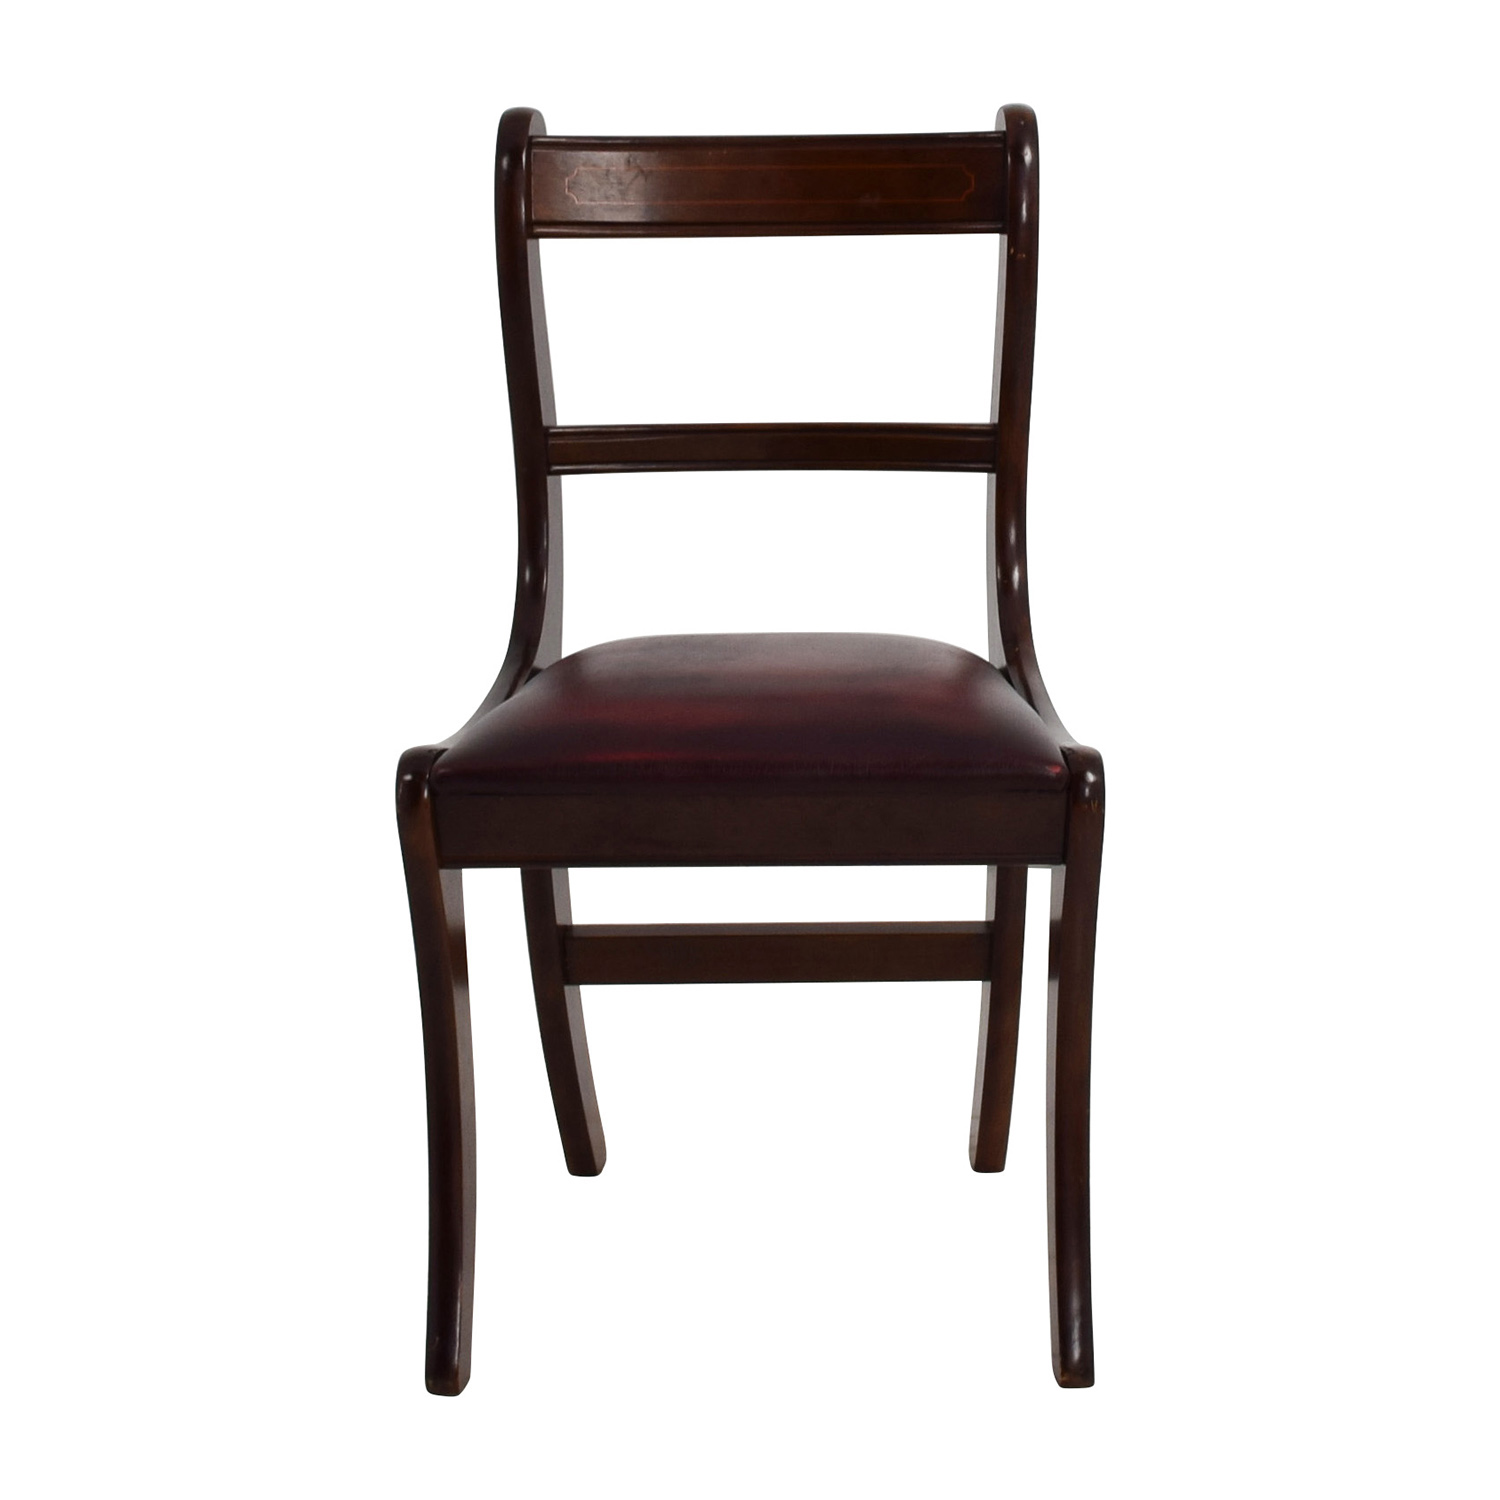 shop Dark Wood Chair with Leather Seat Chairs